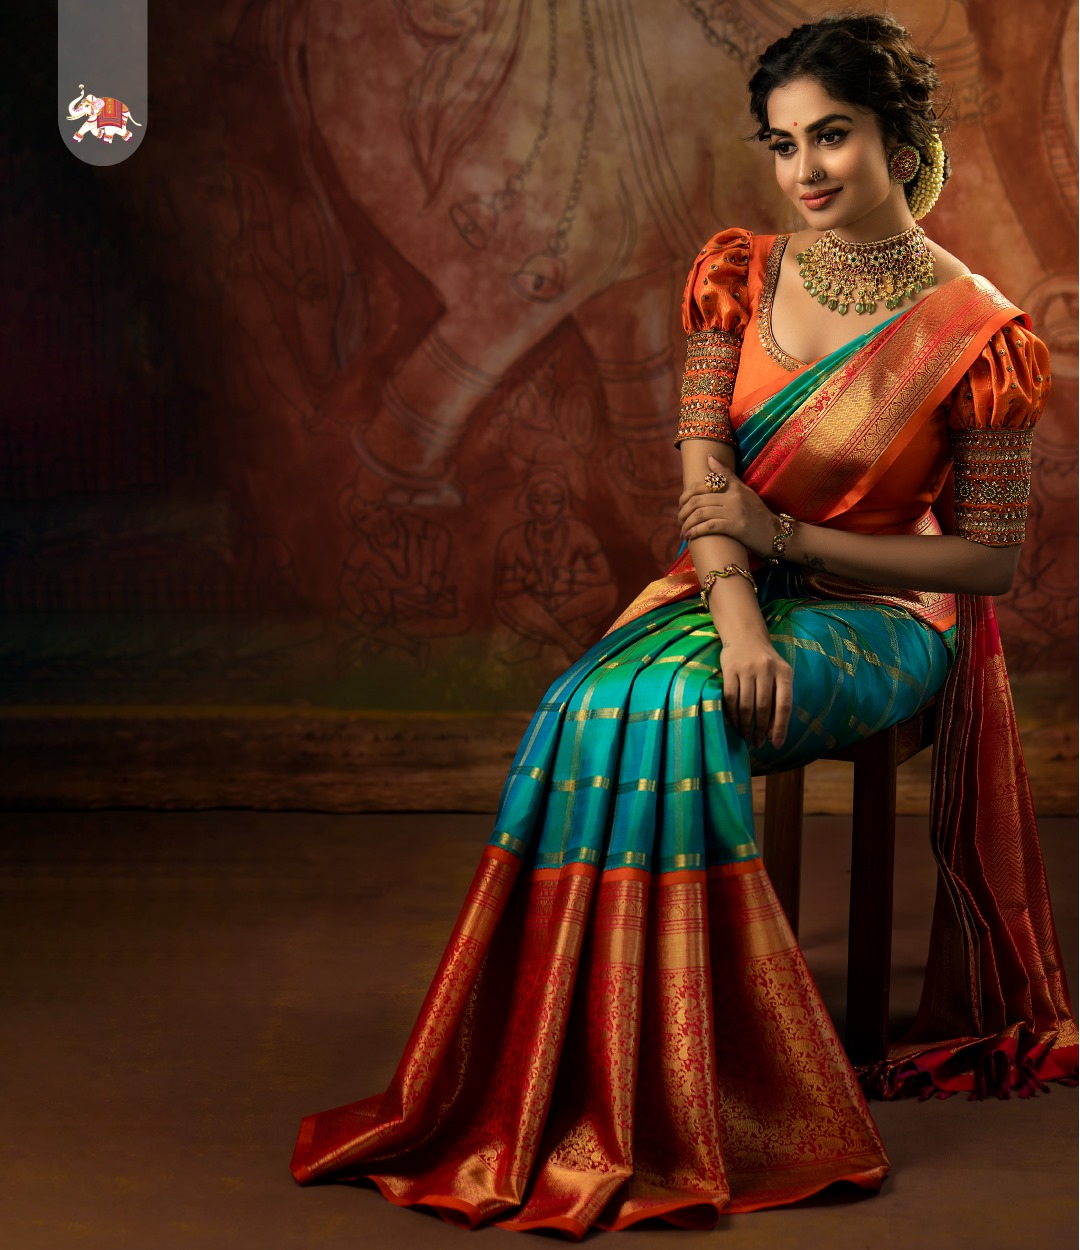 Classic bridal Kanchi korvai silk saree adorned with beautiful floral peacock horse and elephant motifs handwoven with golden zari on pink & orange border against turquoise blue checked kanchi silk. Elegance personified! 2021-03-28